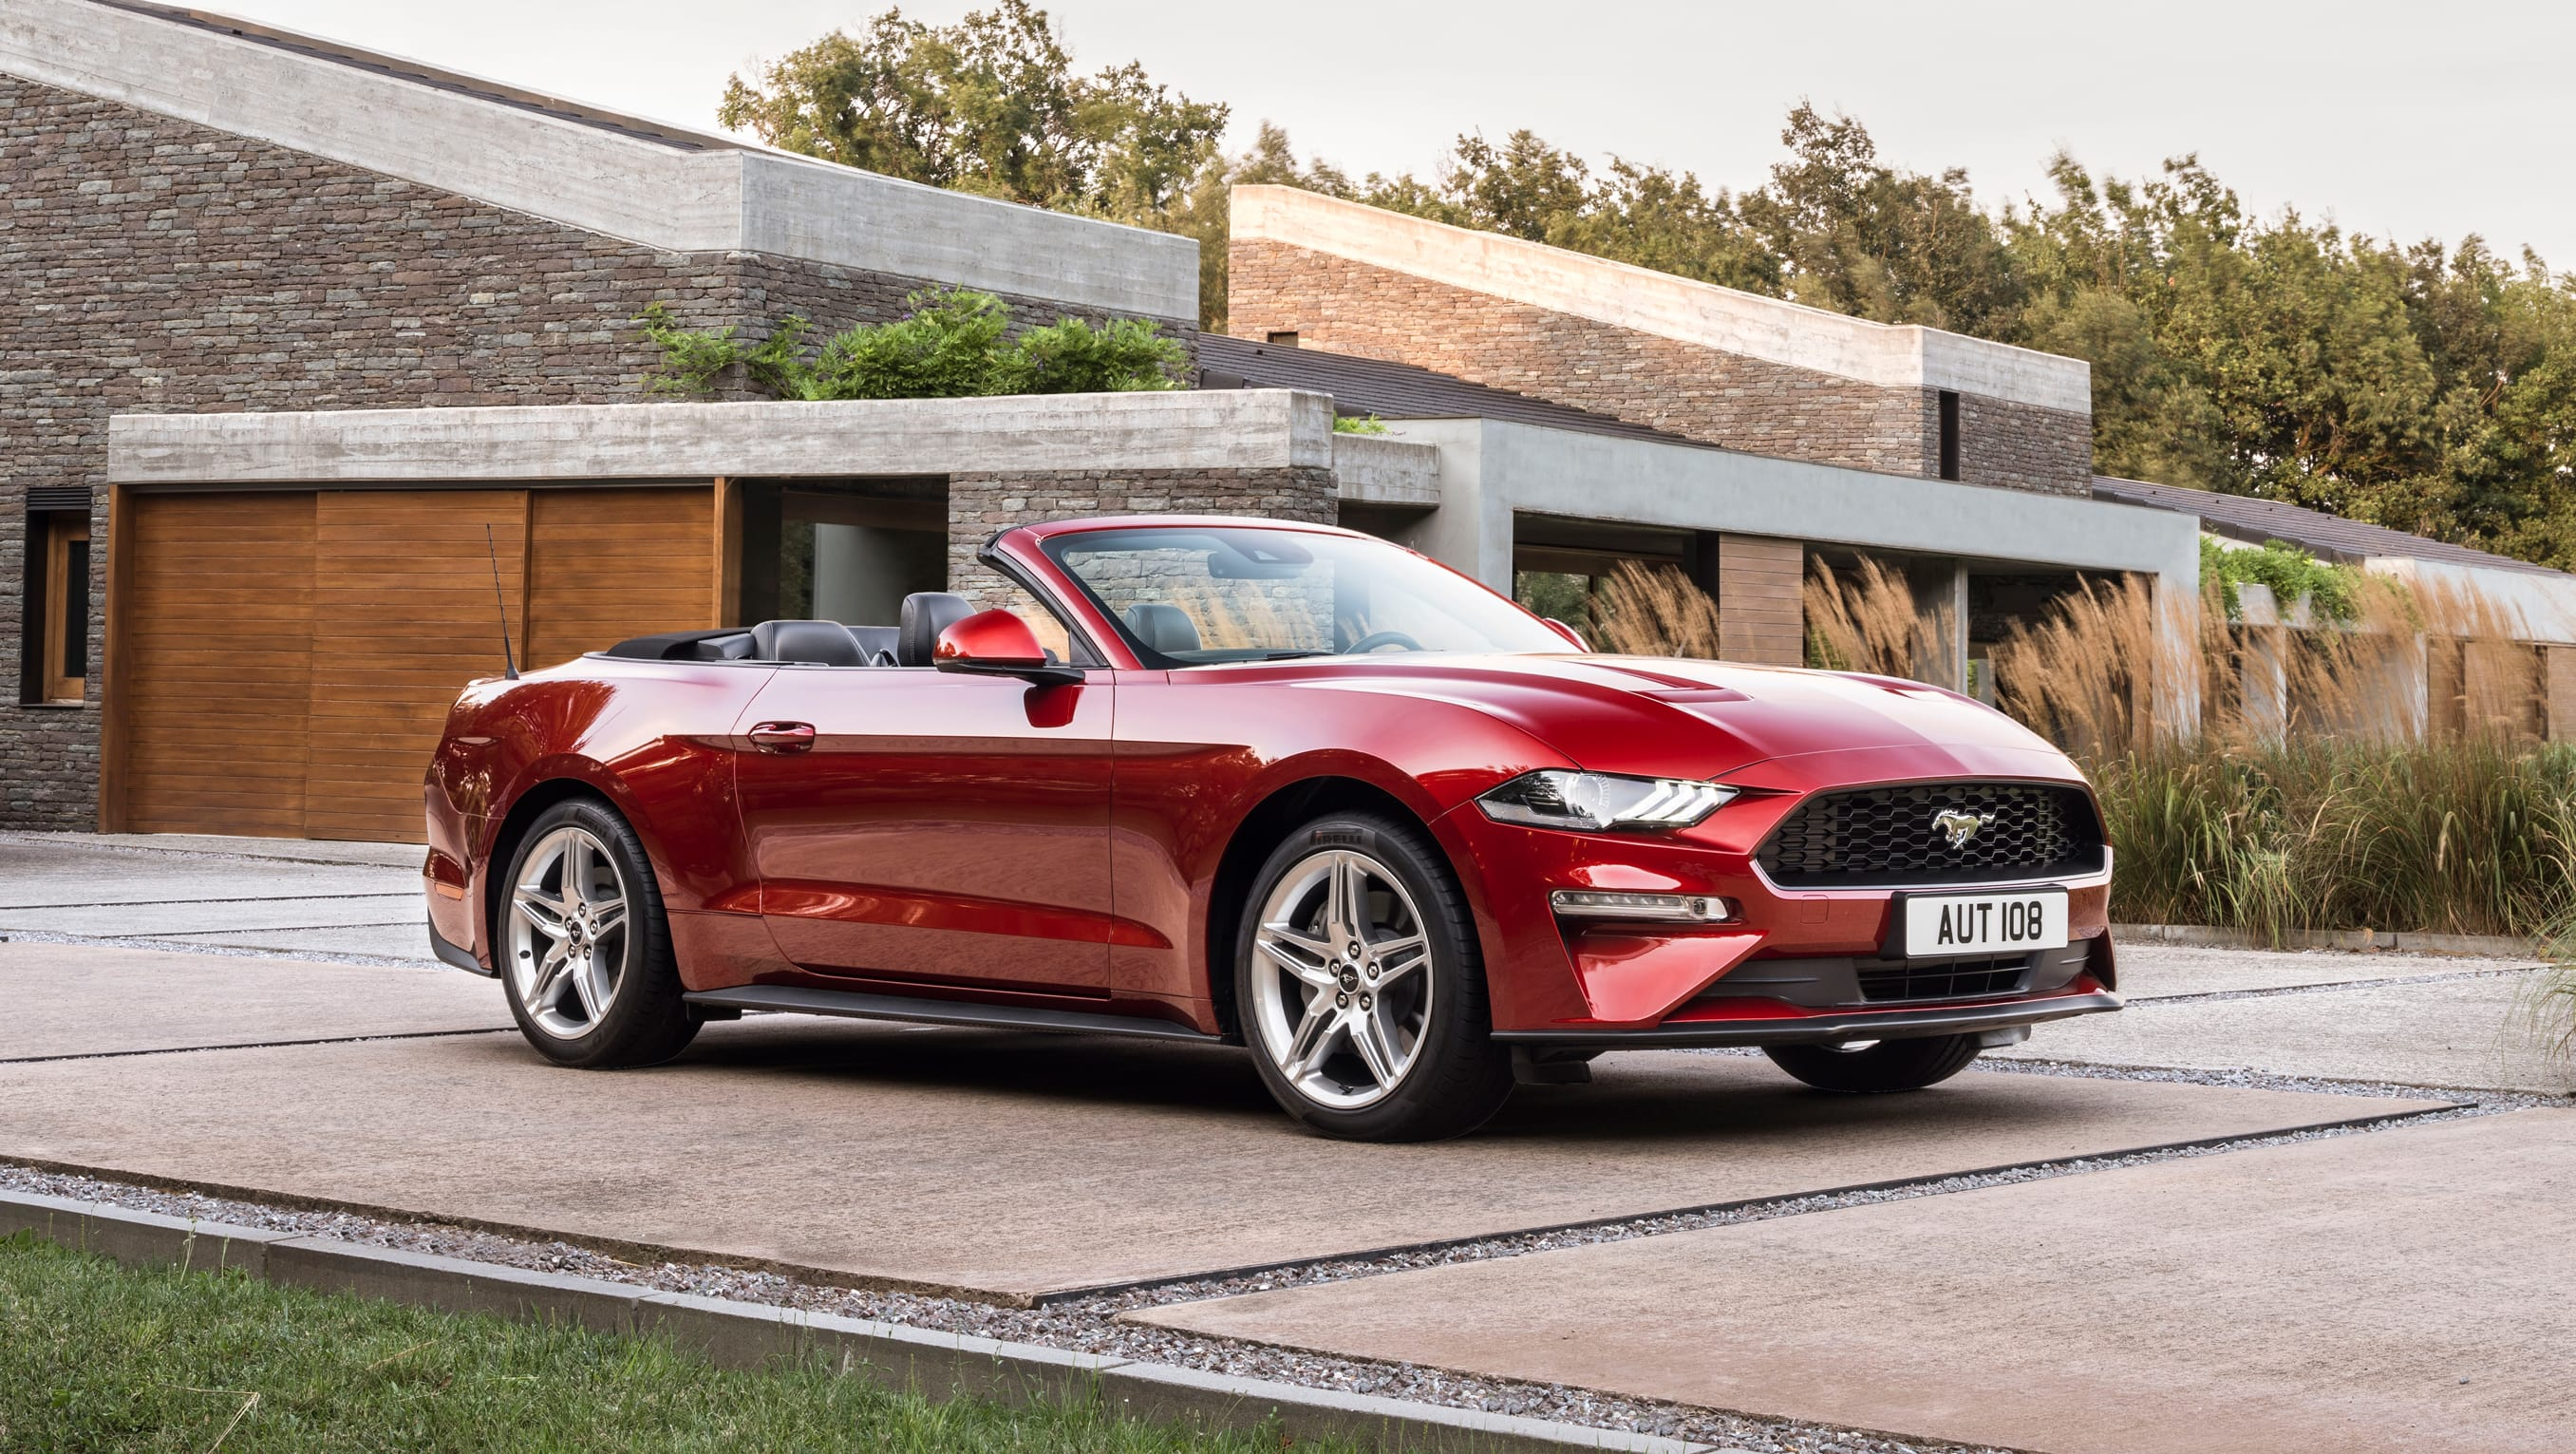 2019 Ford Mustang Sports Car Models Specs Ford Com >> Ford Mustang 2019 Pricing And Spec Confirmed Car News